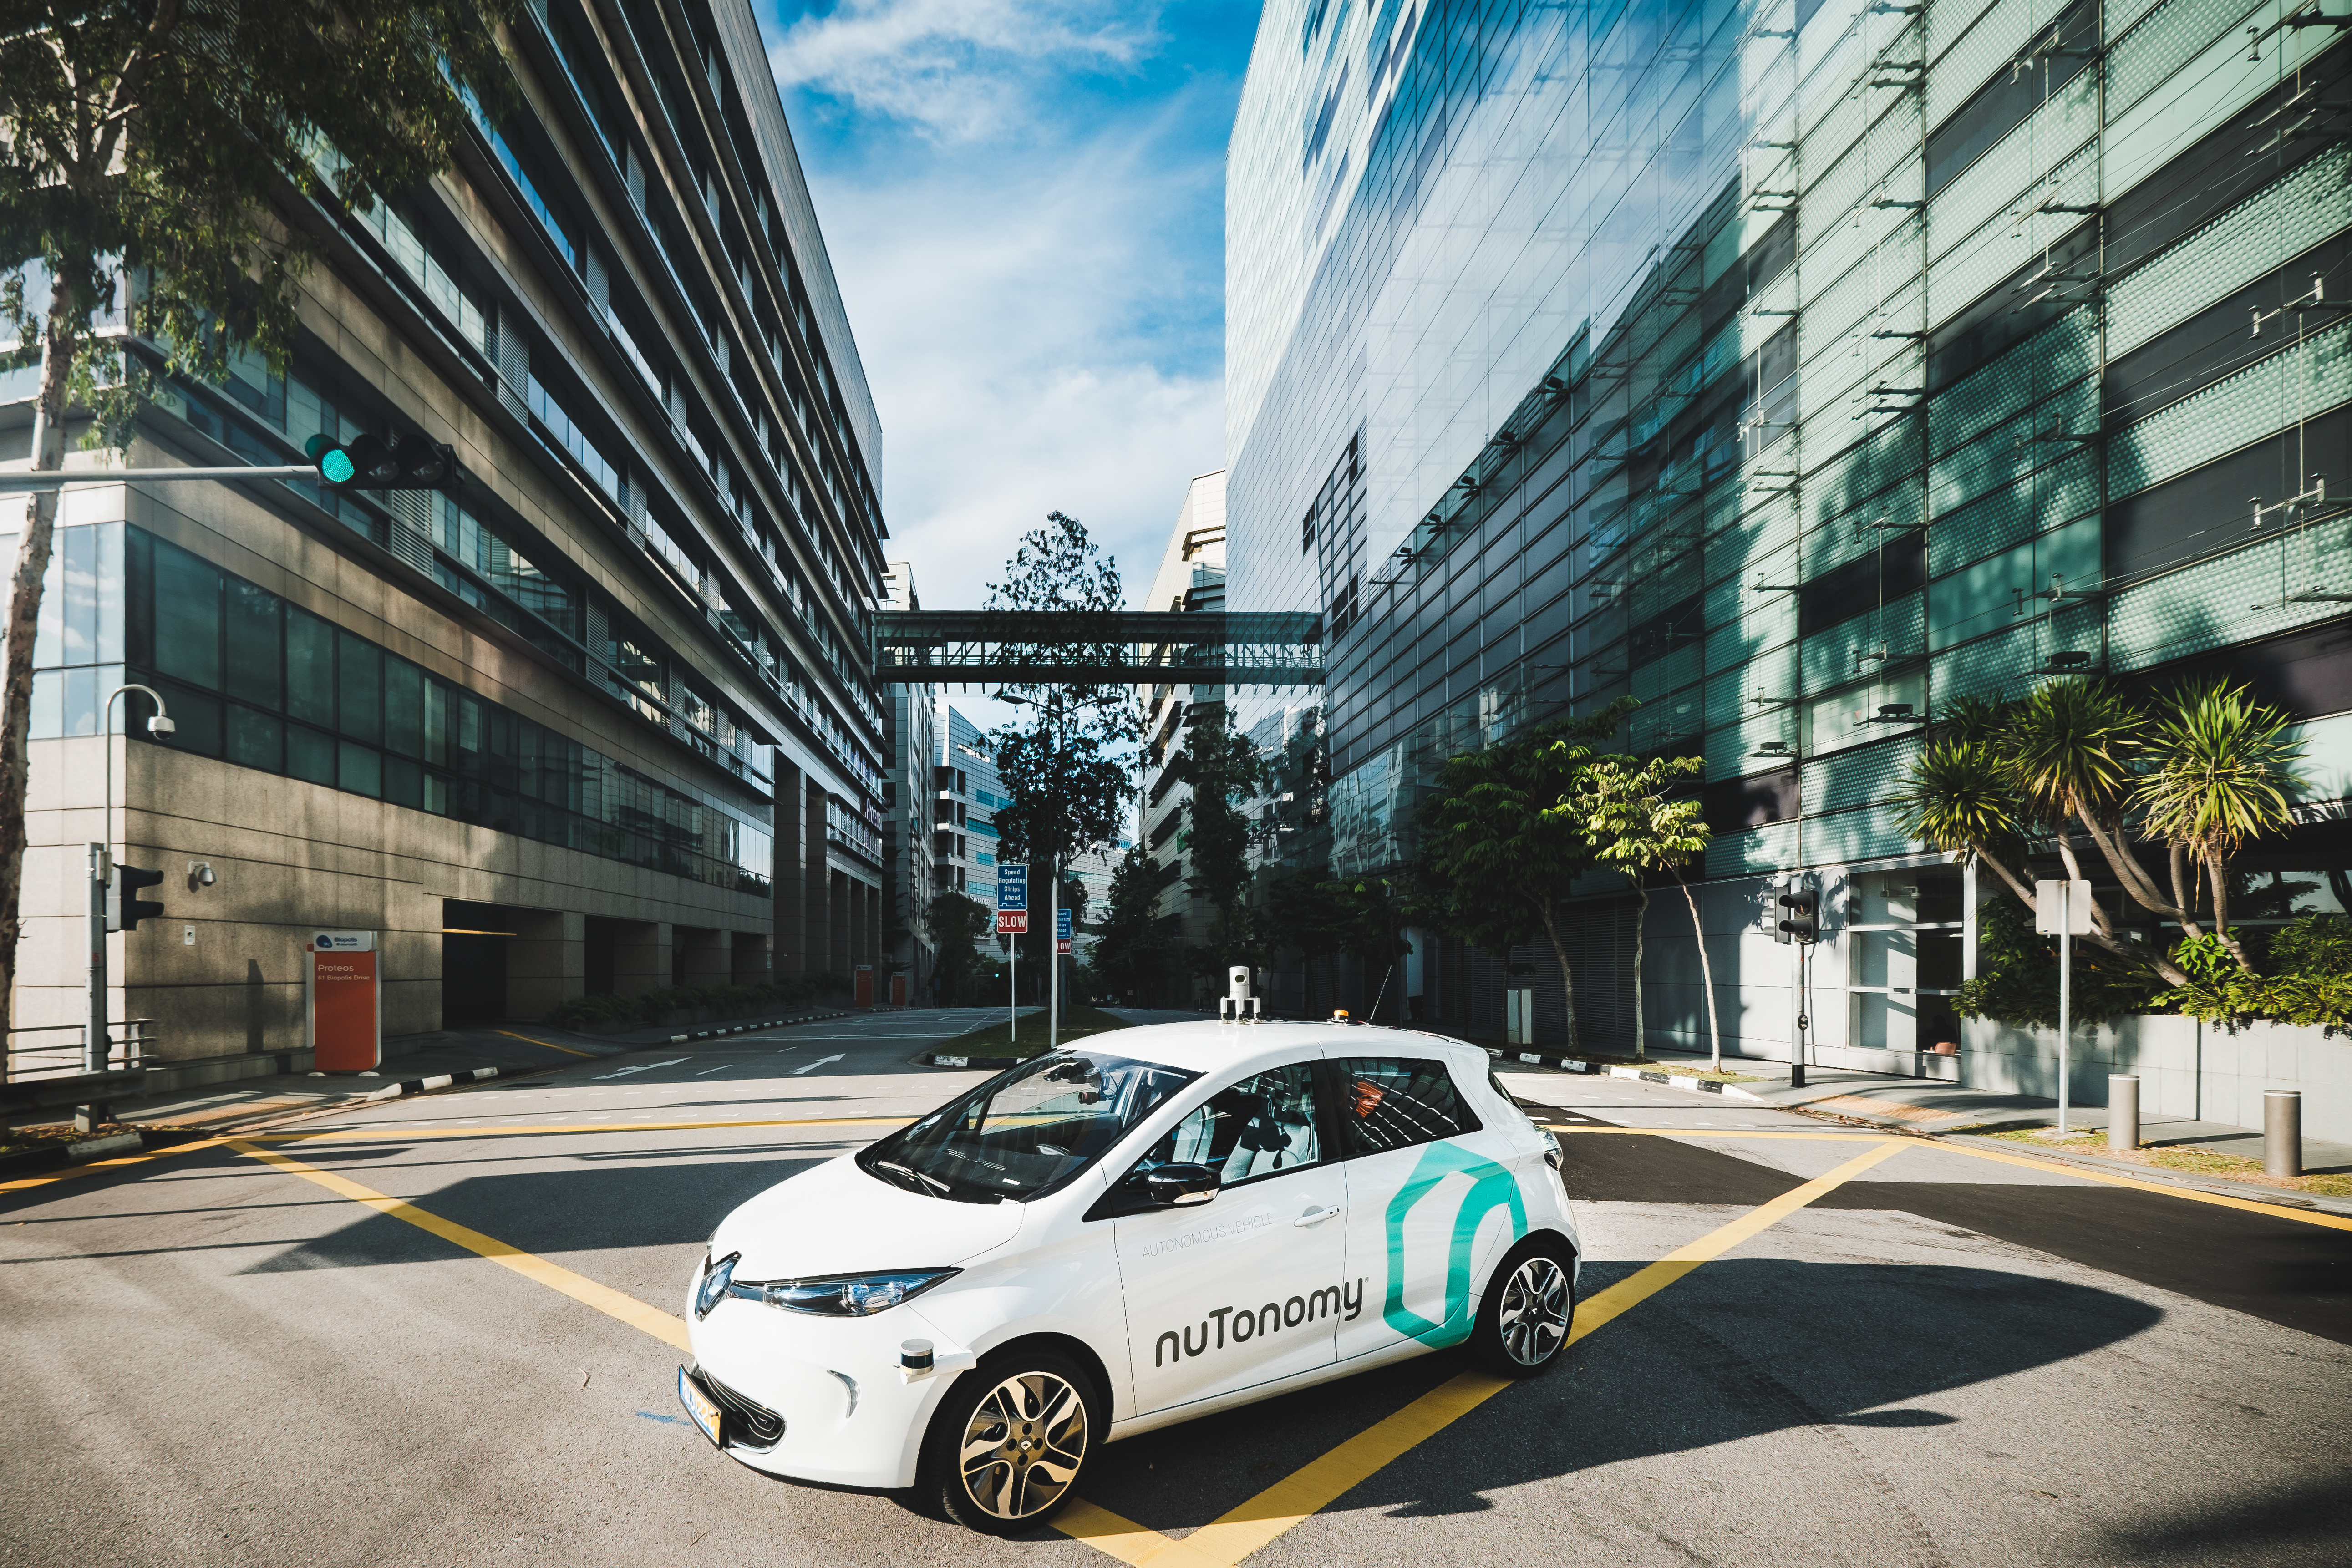 NuTonomy launched the first public self-driving taxi service in Singapore.